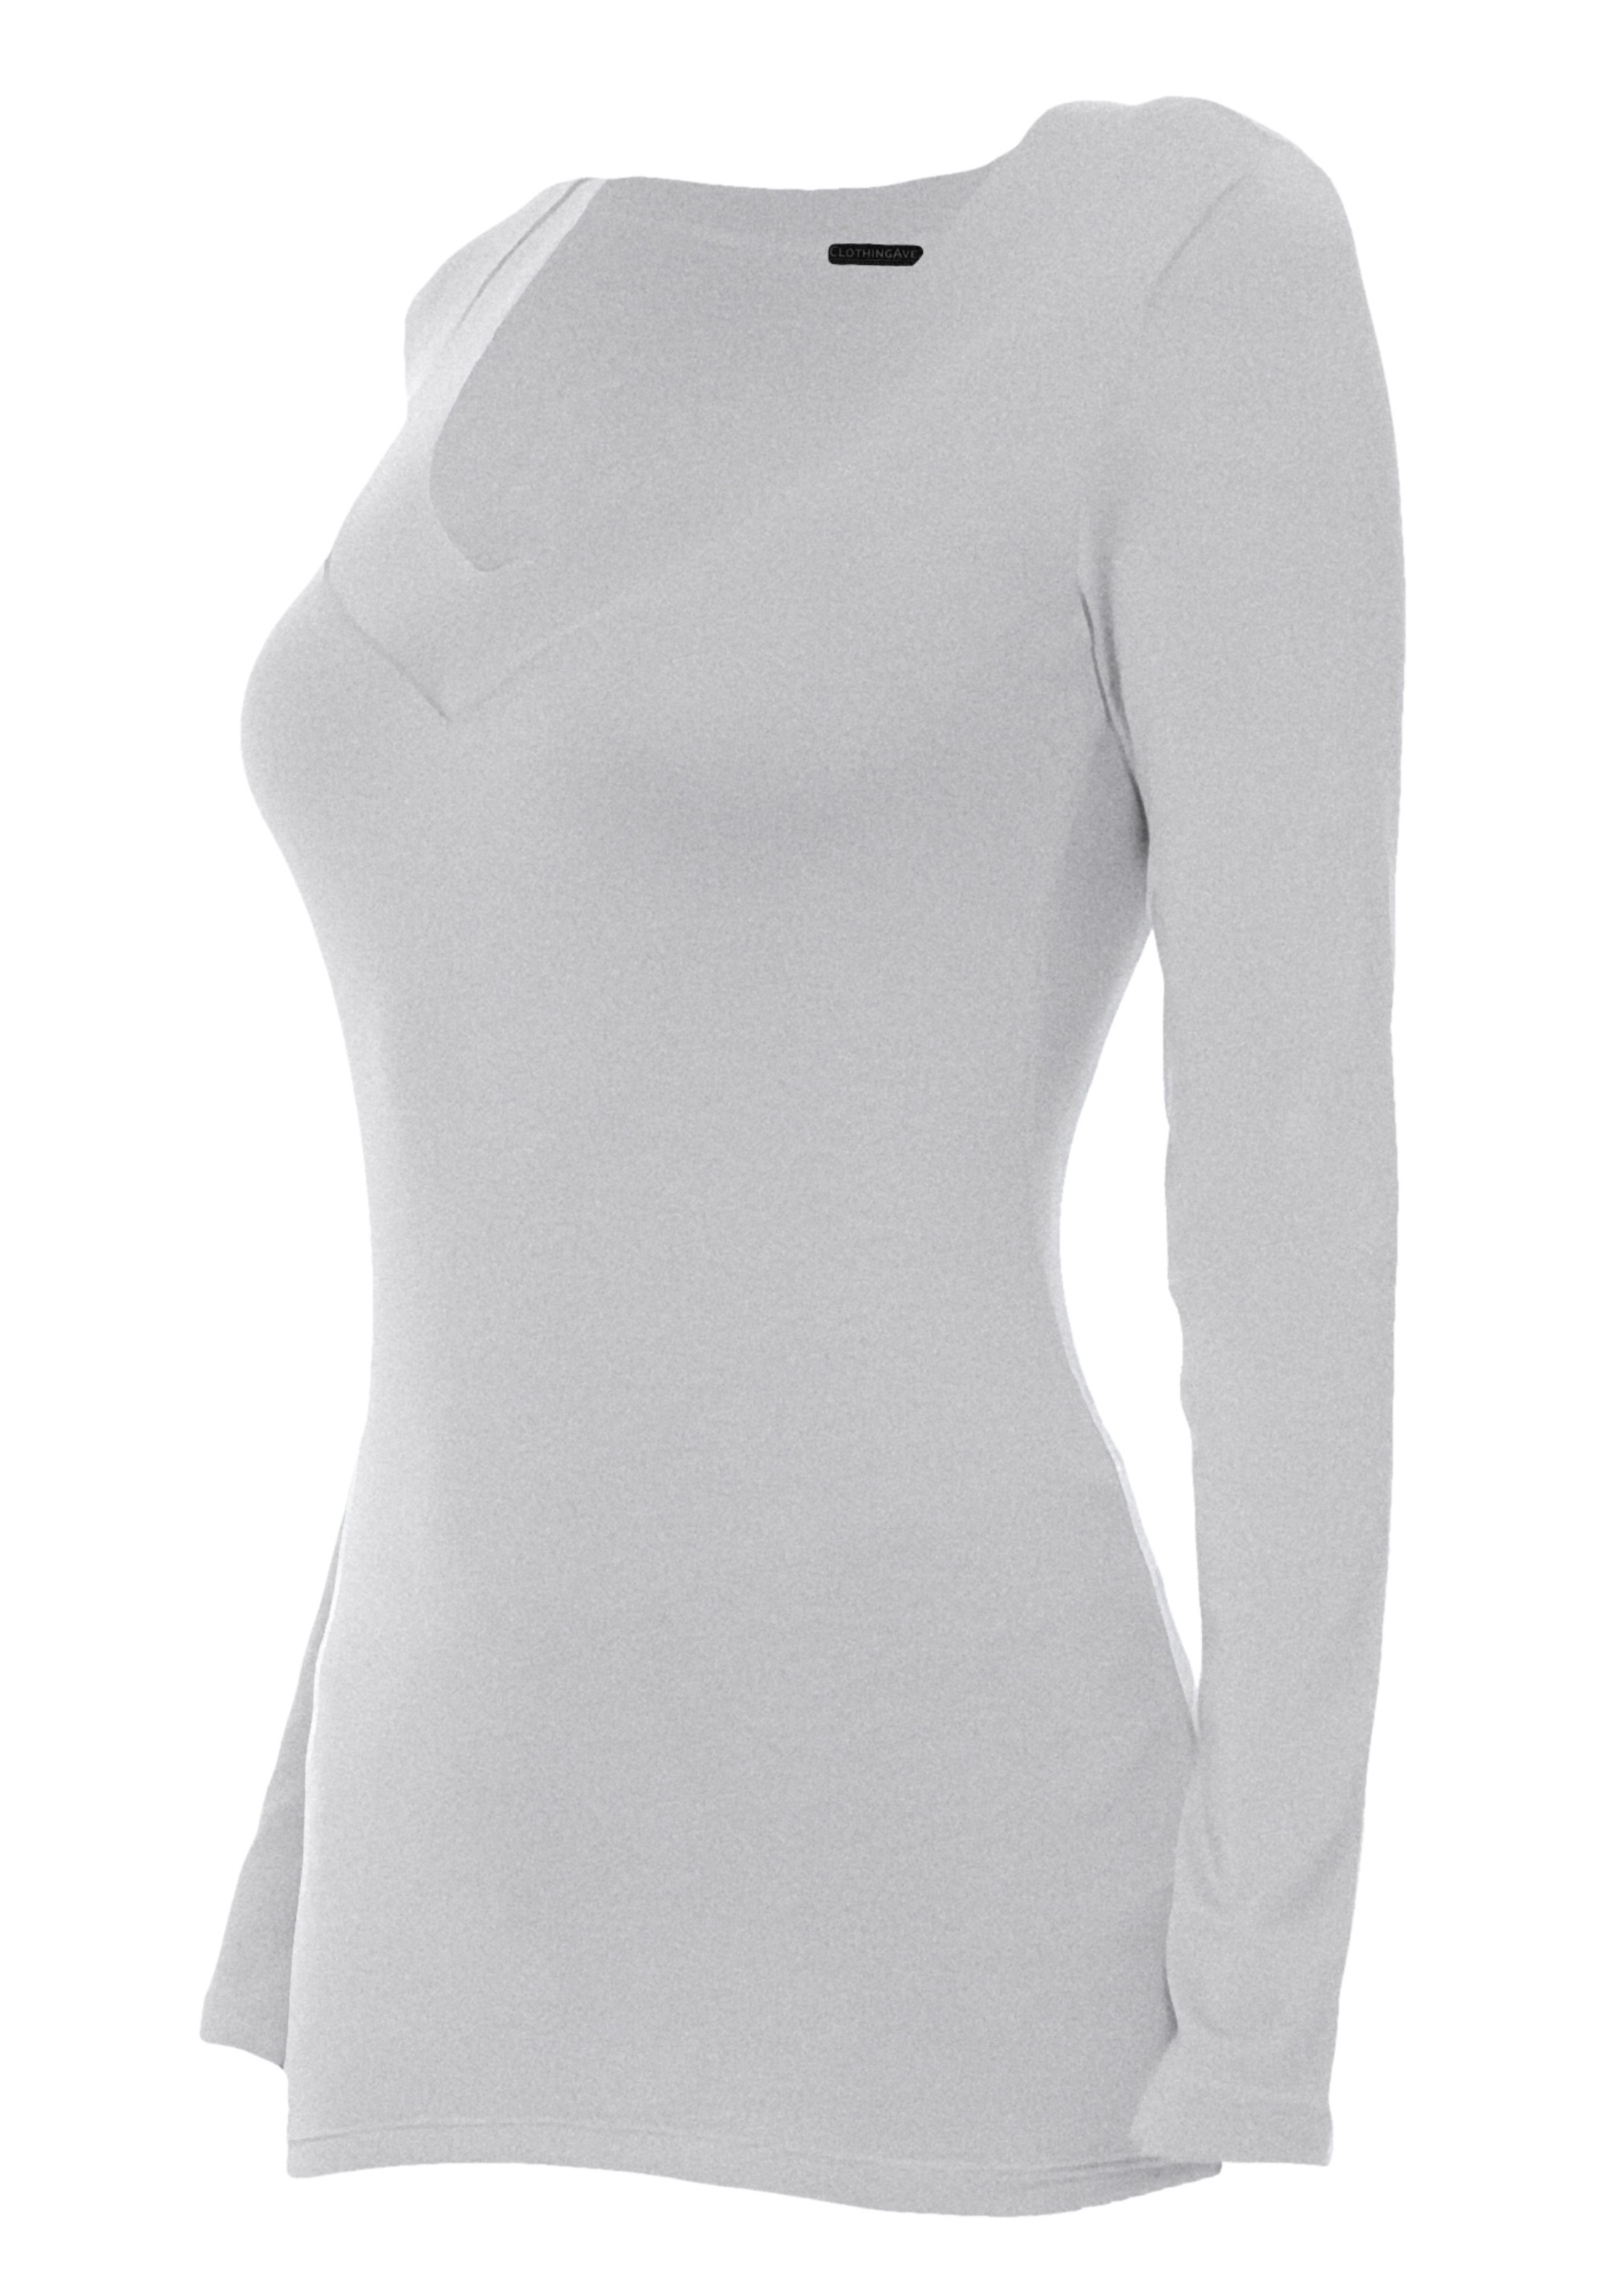 Womens Essential Basic Scoop Neck Bodysuits Breathable Cotton Jersey Collection ClothingAve